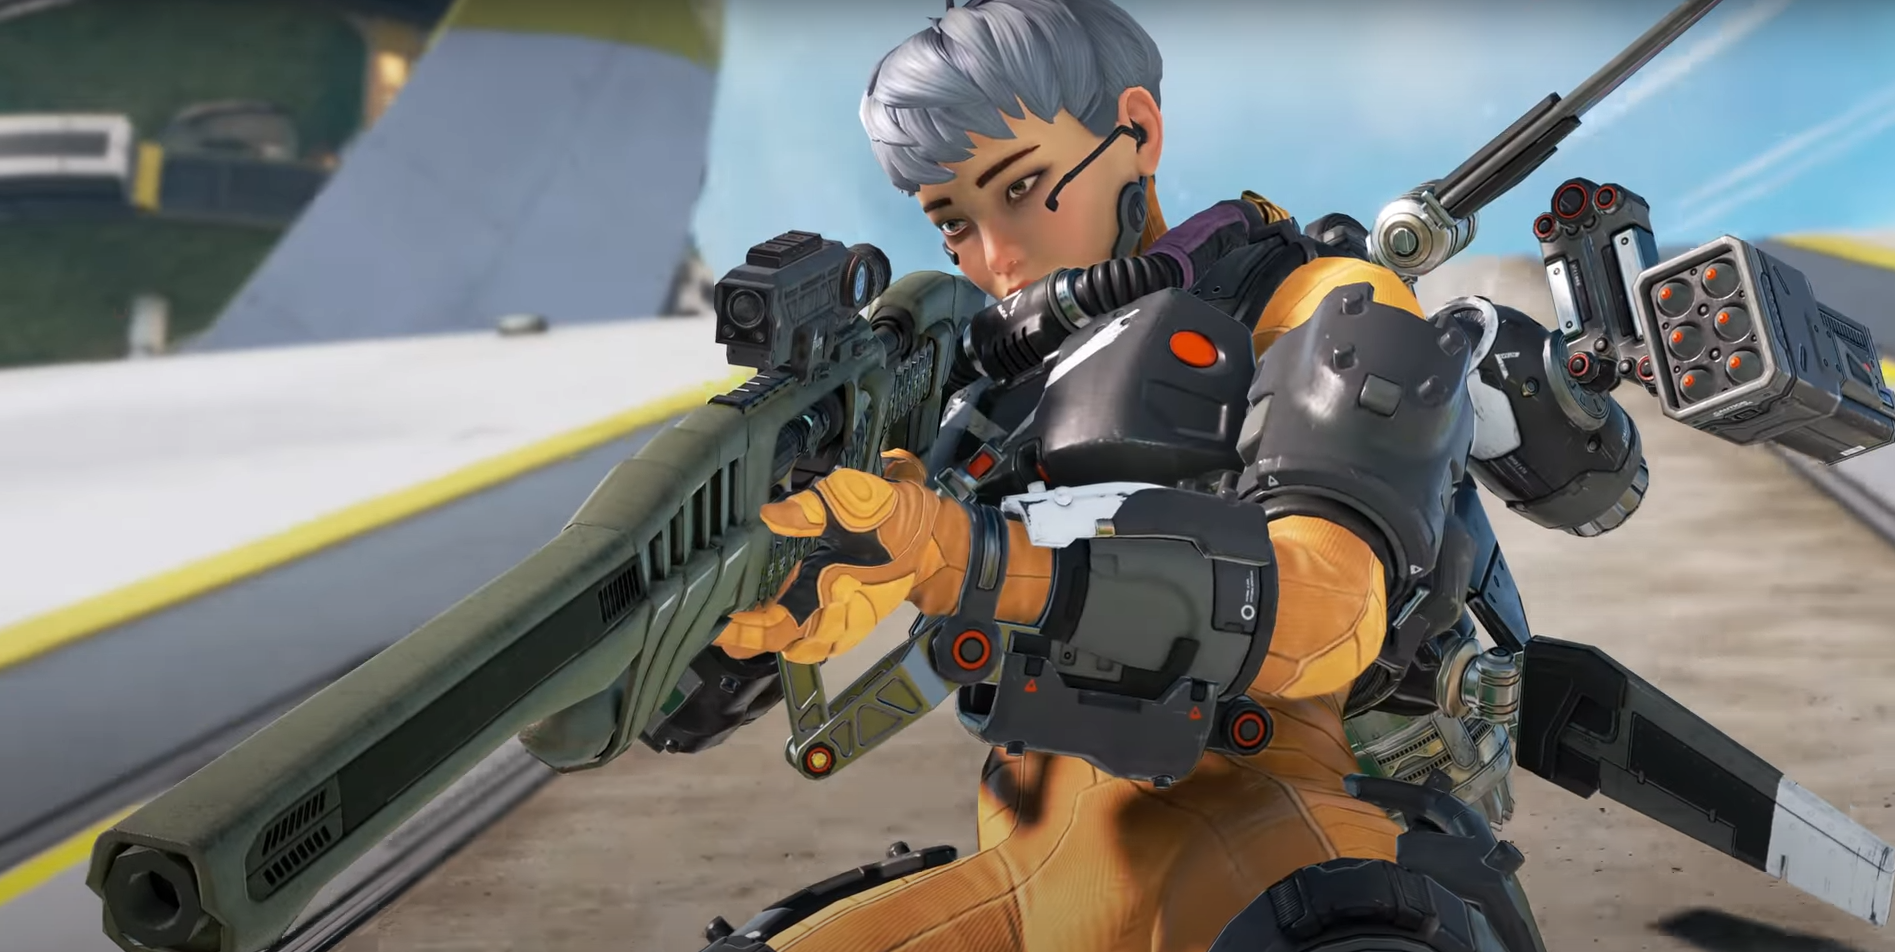 Valkyrie from Apex Legends sliding while firing a sniper rifle